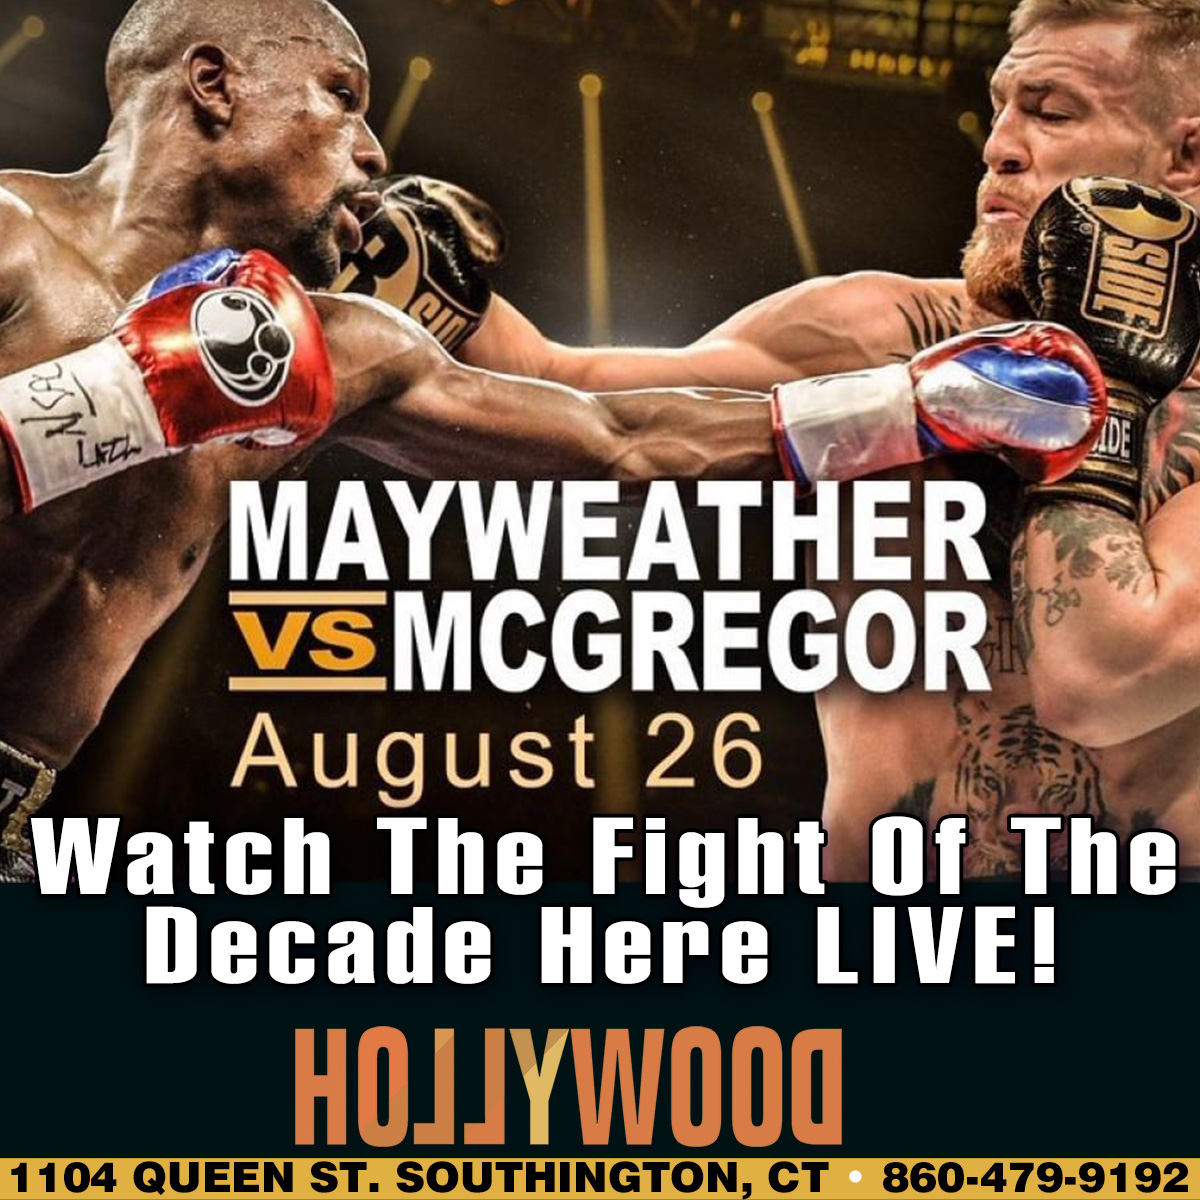 Mayweather Vs McGregor | Hollywood Strip Club Connecticut